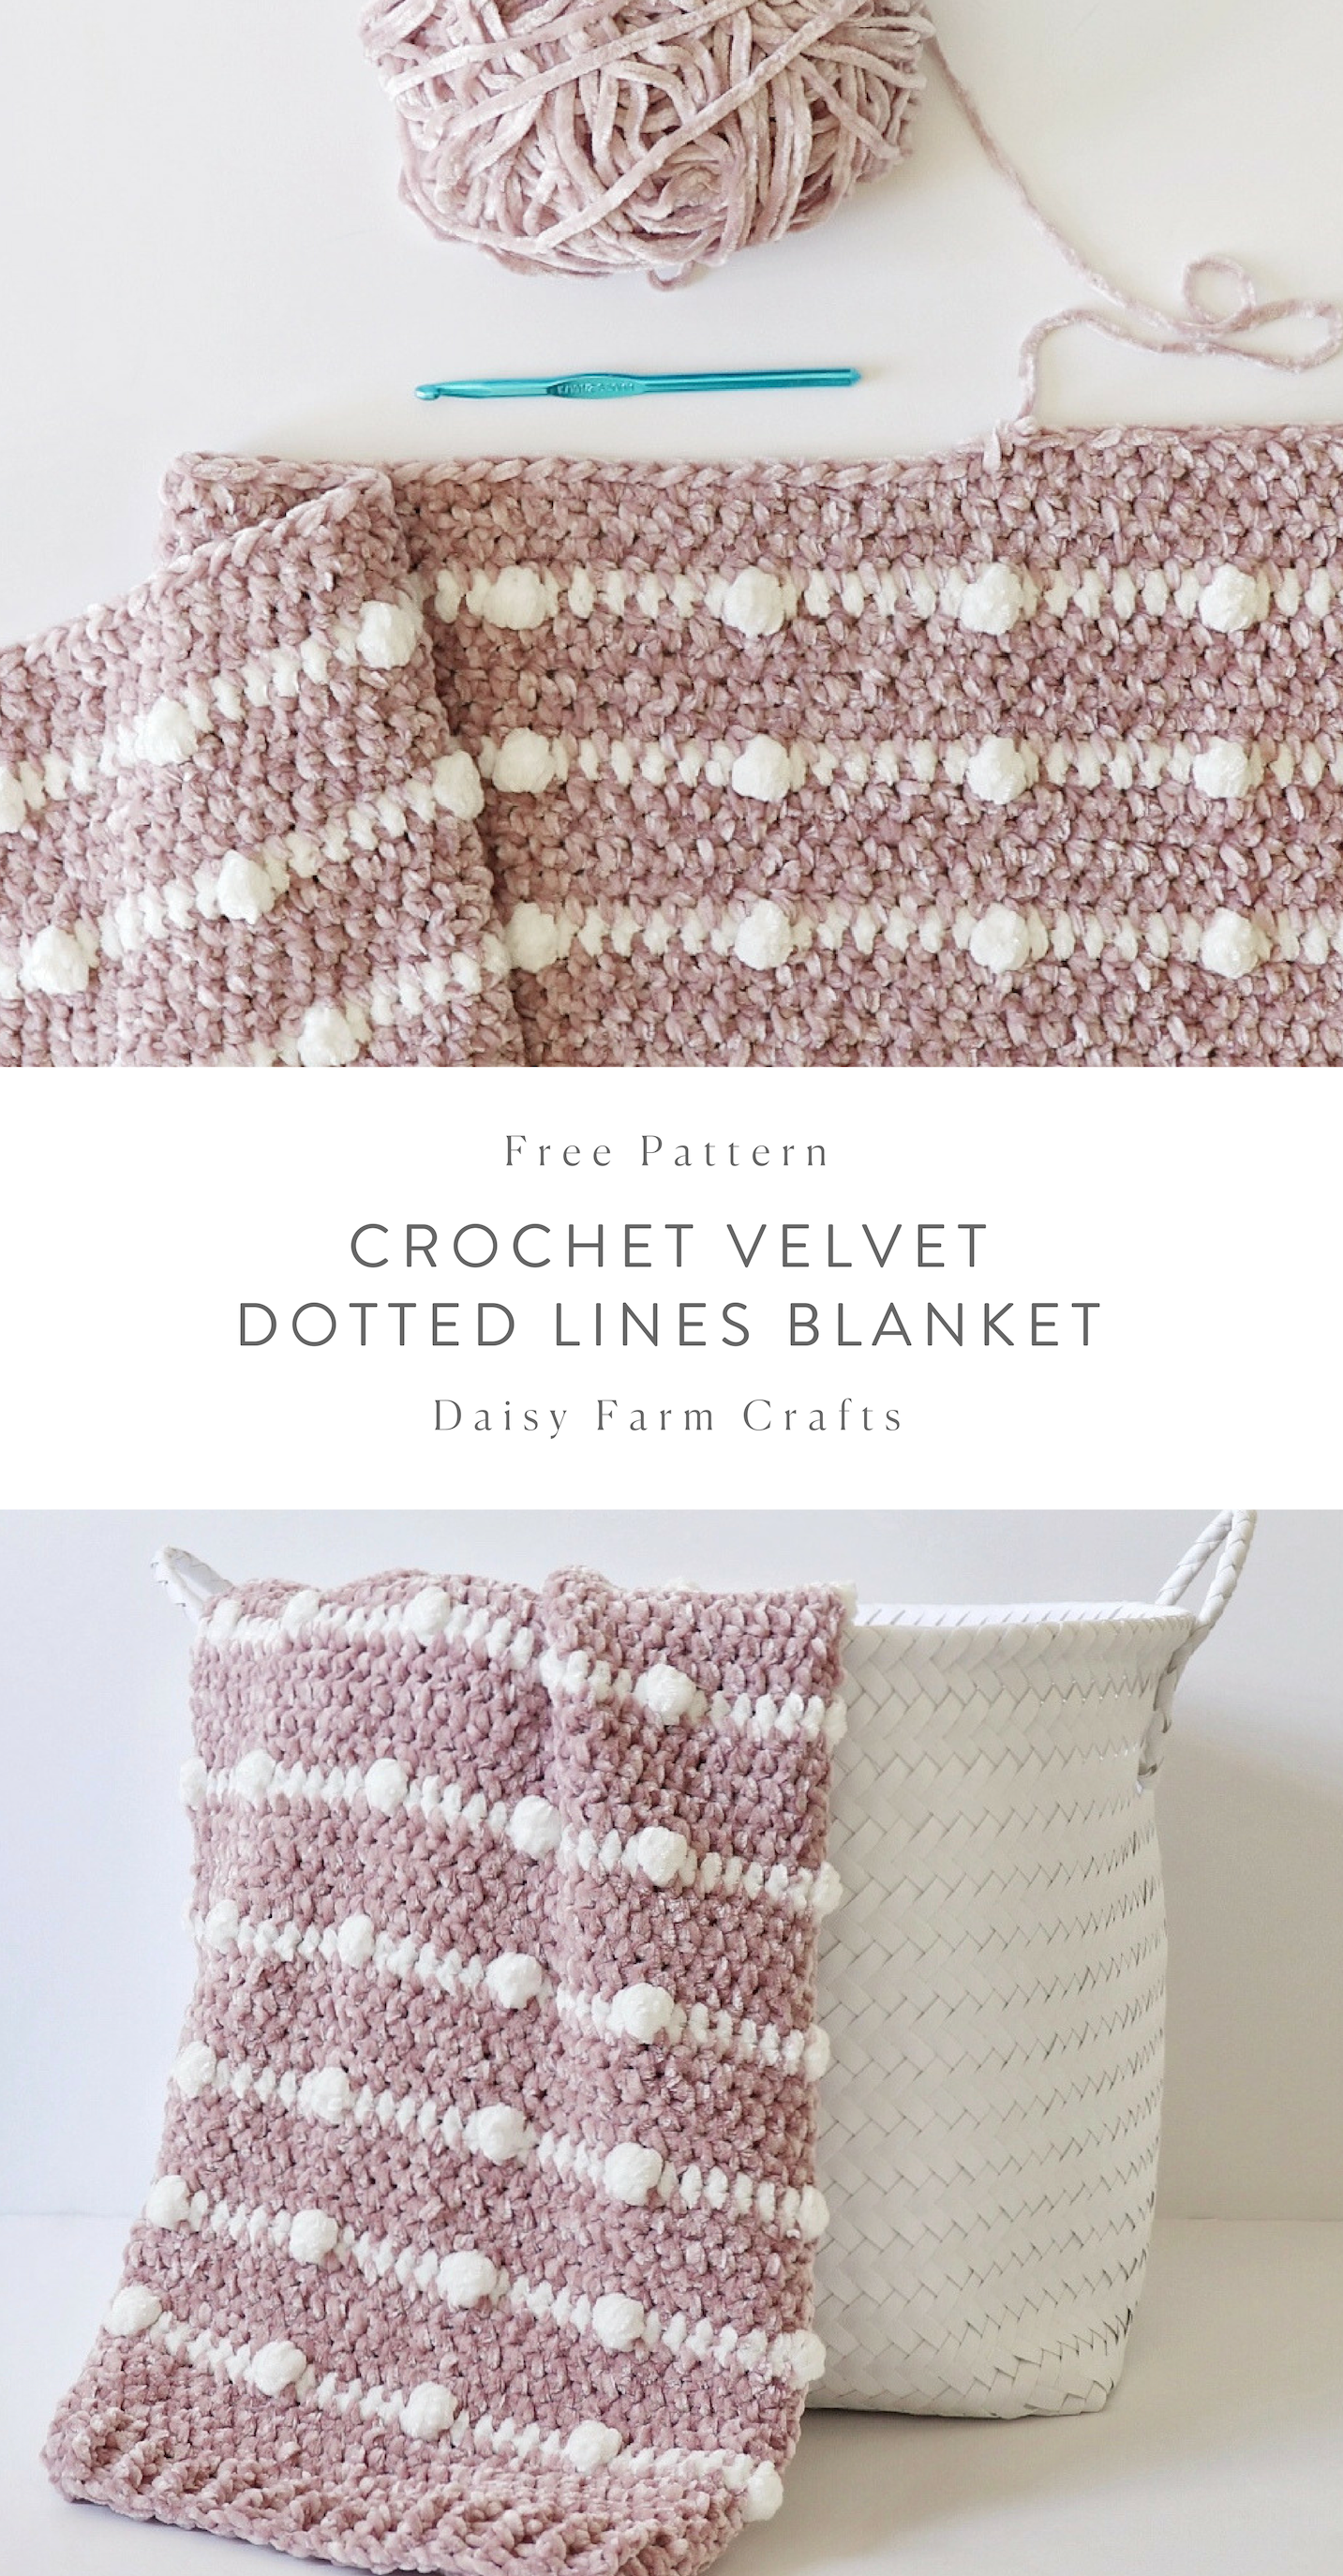 Daisy Farm Crafts Crochet Projects Crochet Patterns Crochet Blanket Patterns